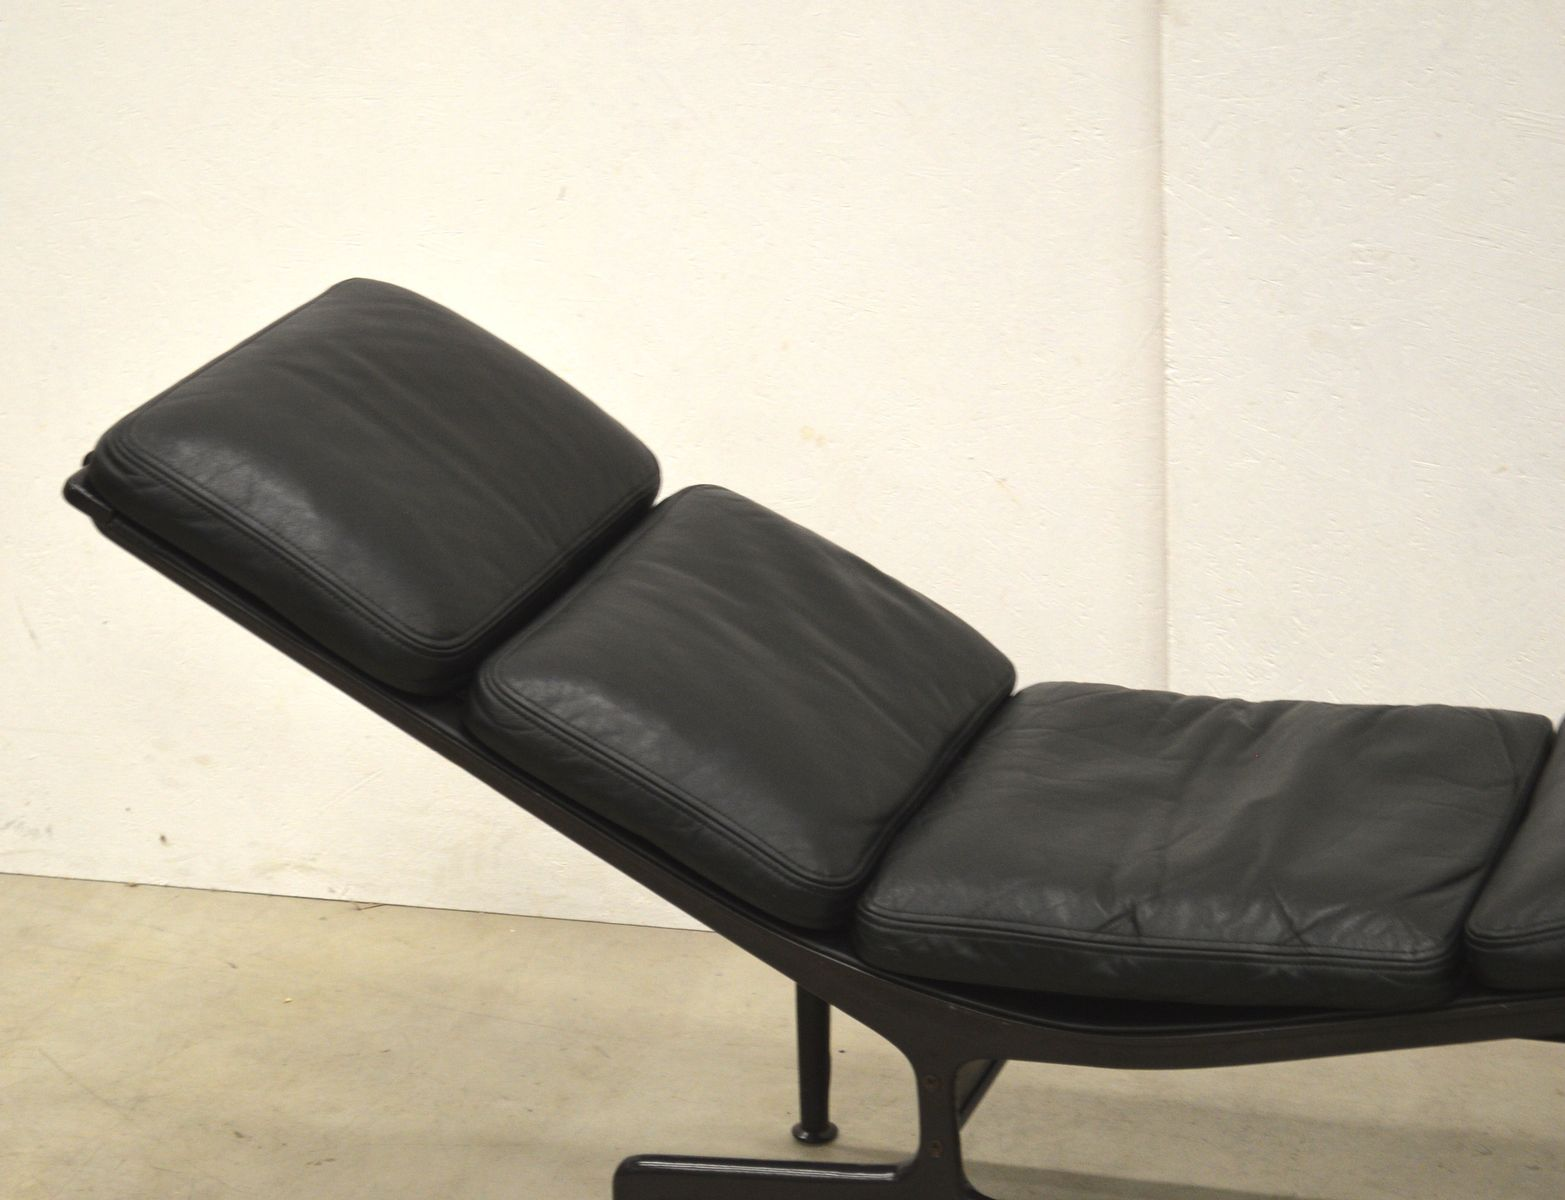 Es106 soft pad la chaise by charles ray eames for vitra 1980s for sale - Chaise charles et ray eames ...